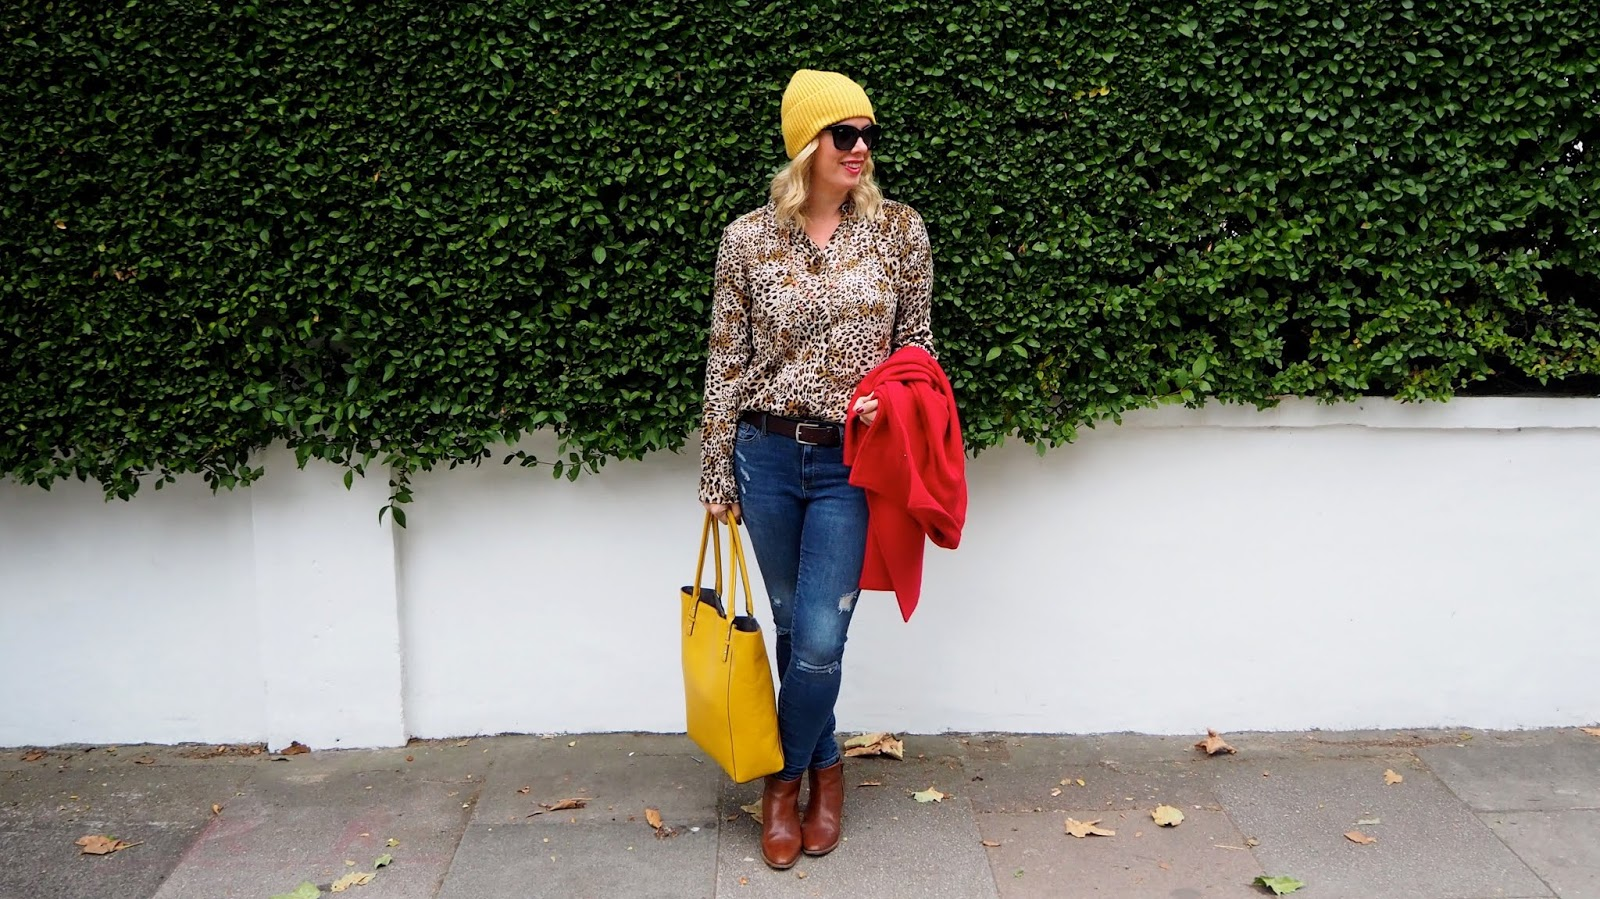 leopard print blouse, jeans, brown belt, brown boots, red coat, yellow hat & bag and black sunglasses